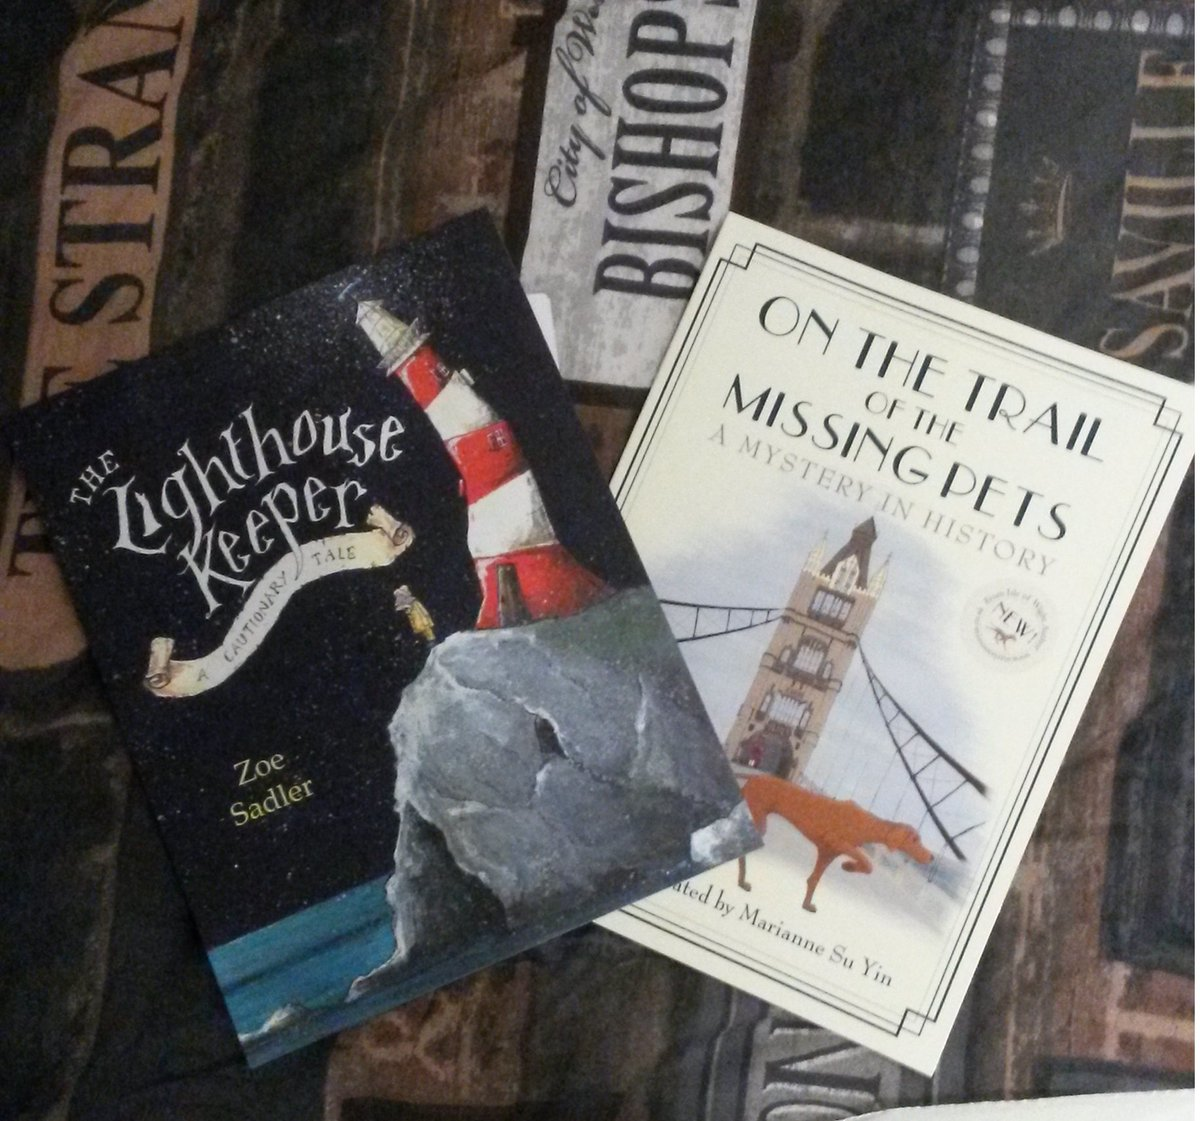 Look what I #hauled from #Waterstones today! Two gorgeous #picture #books by #local #authors @mariannesuyin @zoesadler_ink<br>http://pic.twitter.com/ewcBDPOGGB